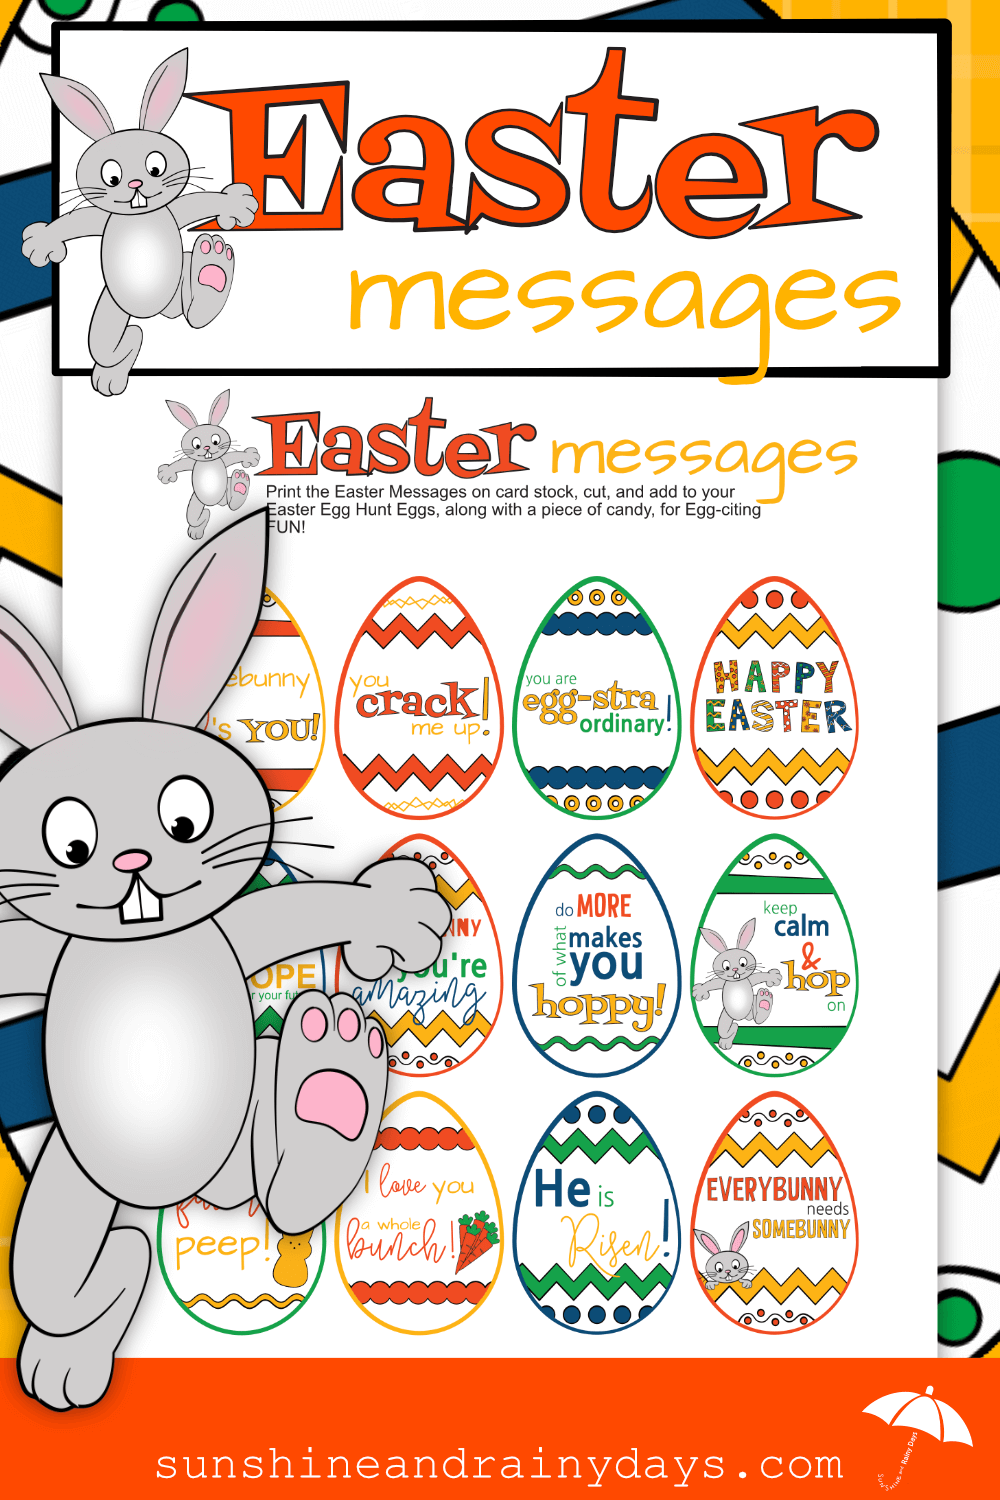 Make your Easter Egg Hunt egg-stra fun with Easter Messages!